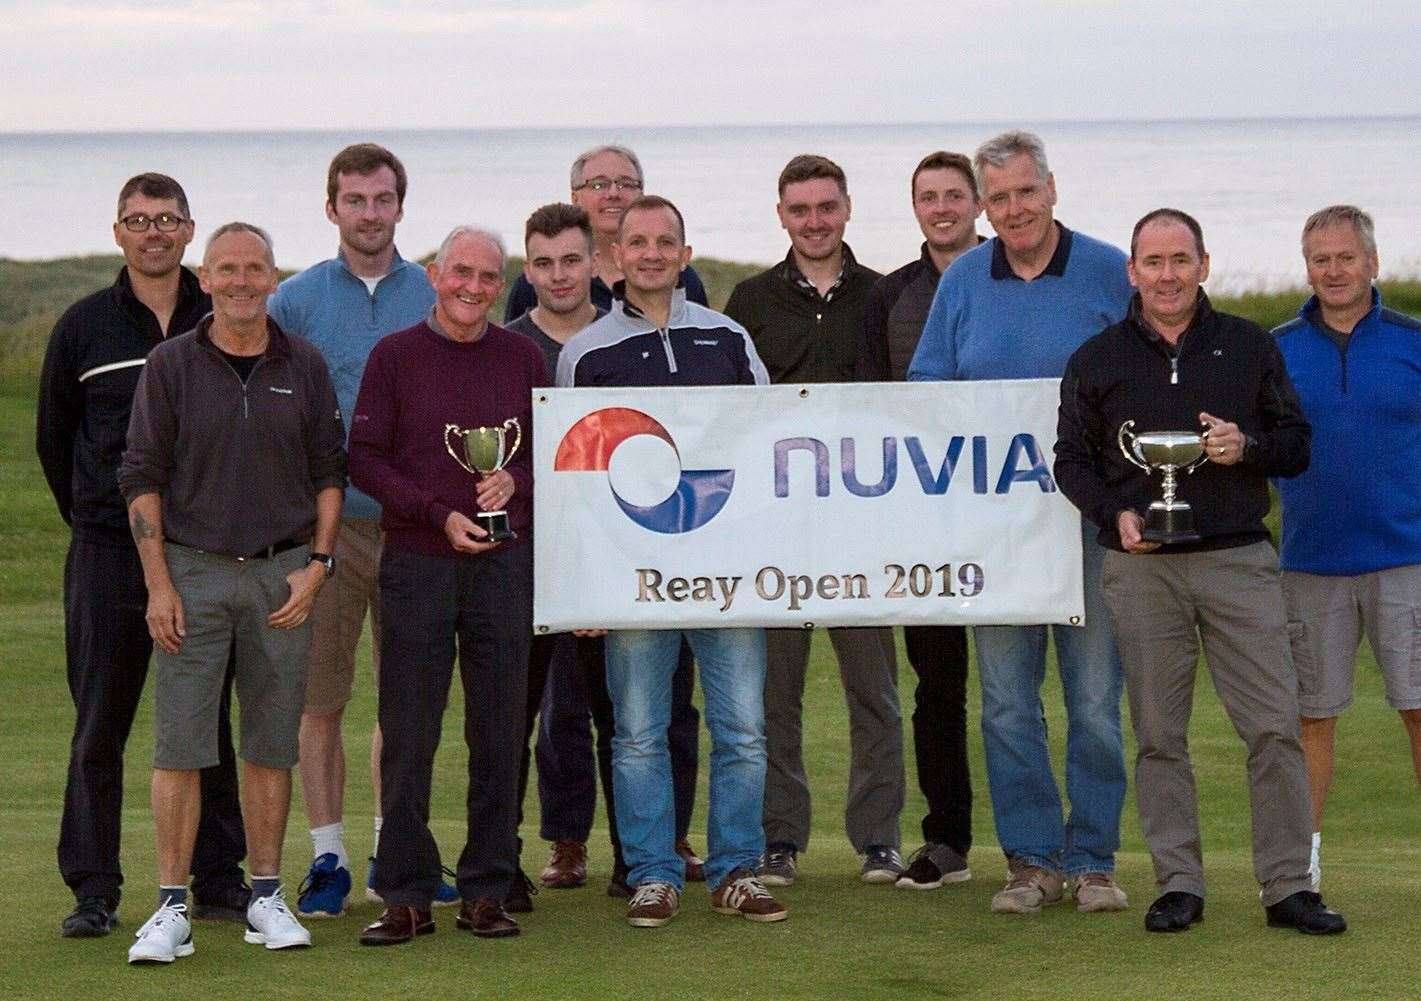 Some of the prize-winners from the annual Nuvia Reay Open.